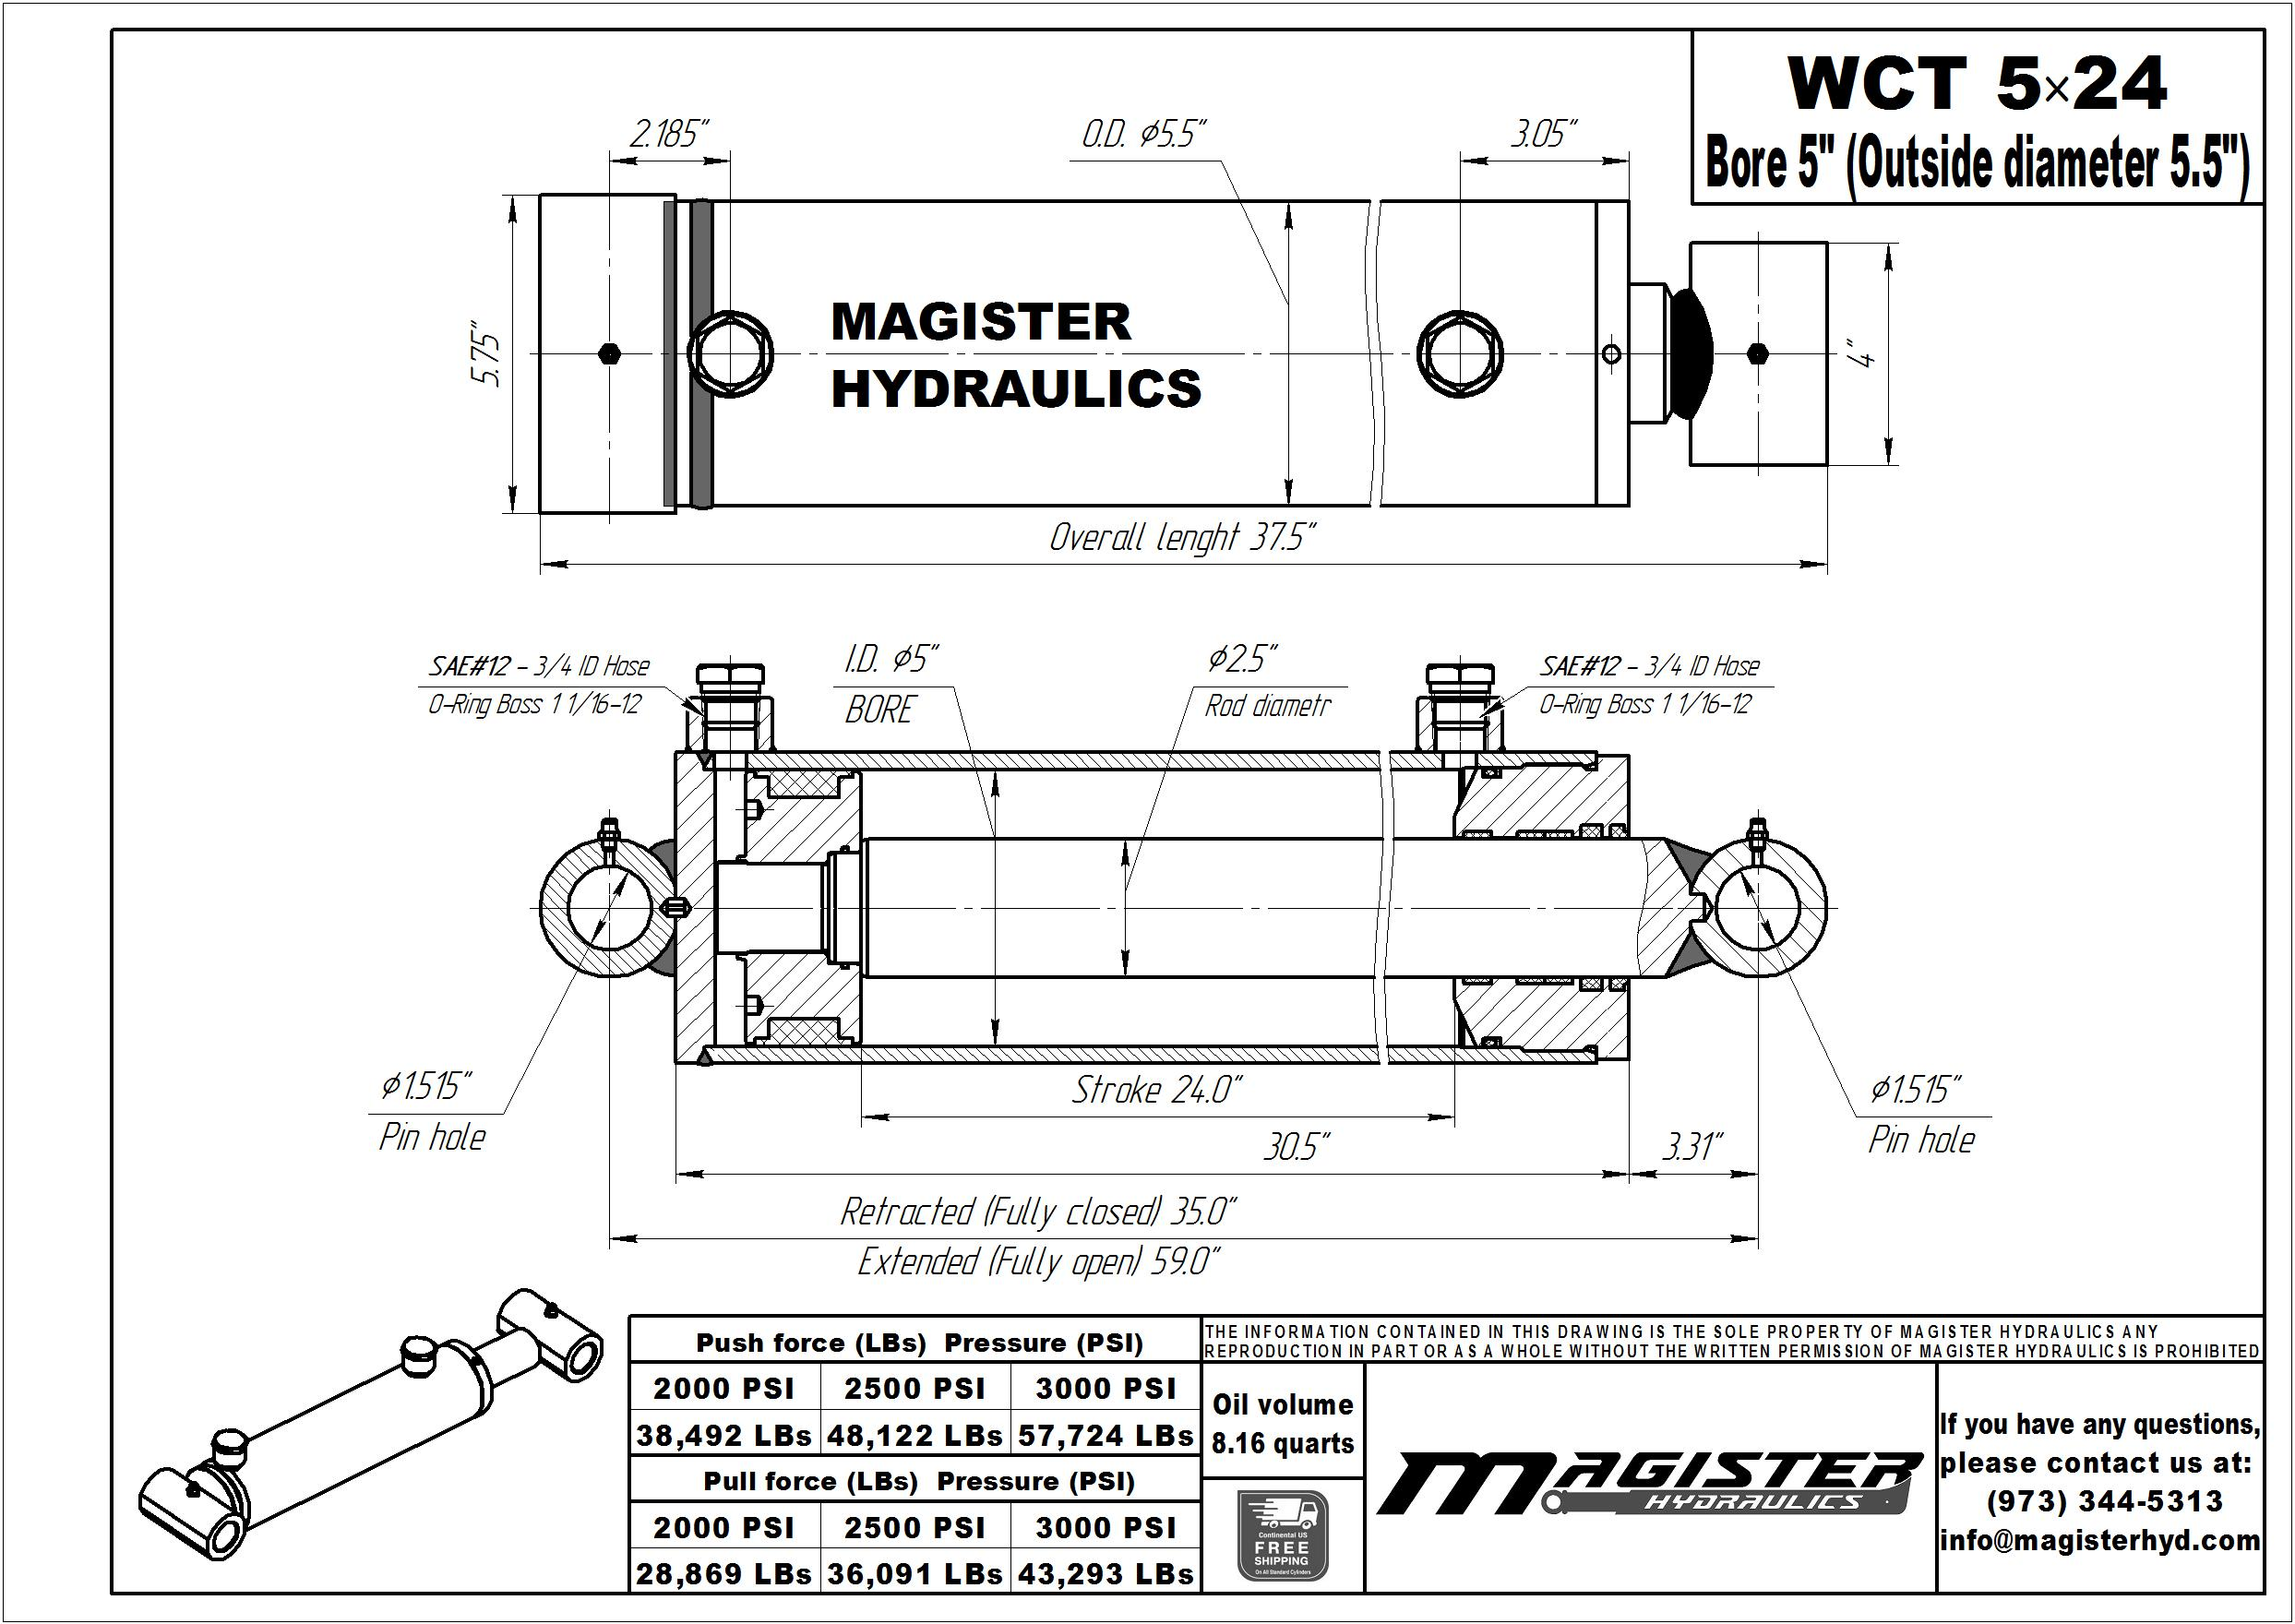 5 bore x 24 stroke hydraulic cylinder, welded cross tube double acting cylinder | Magister Hydraulics